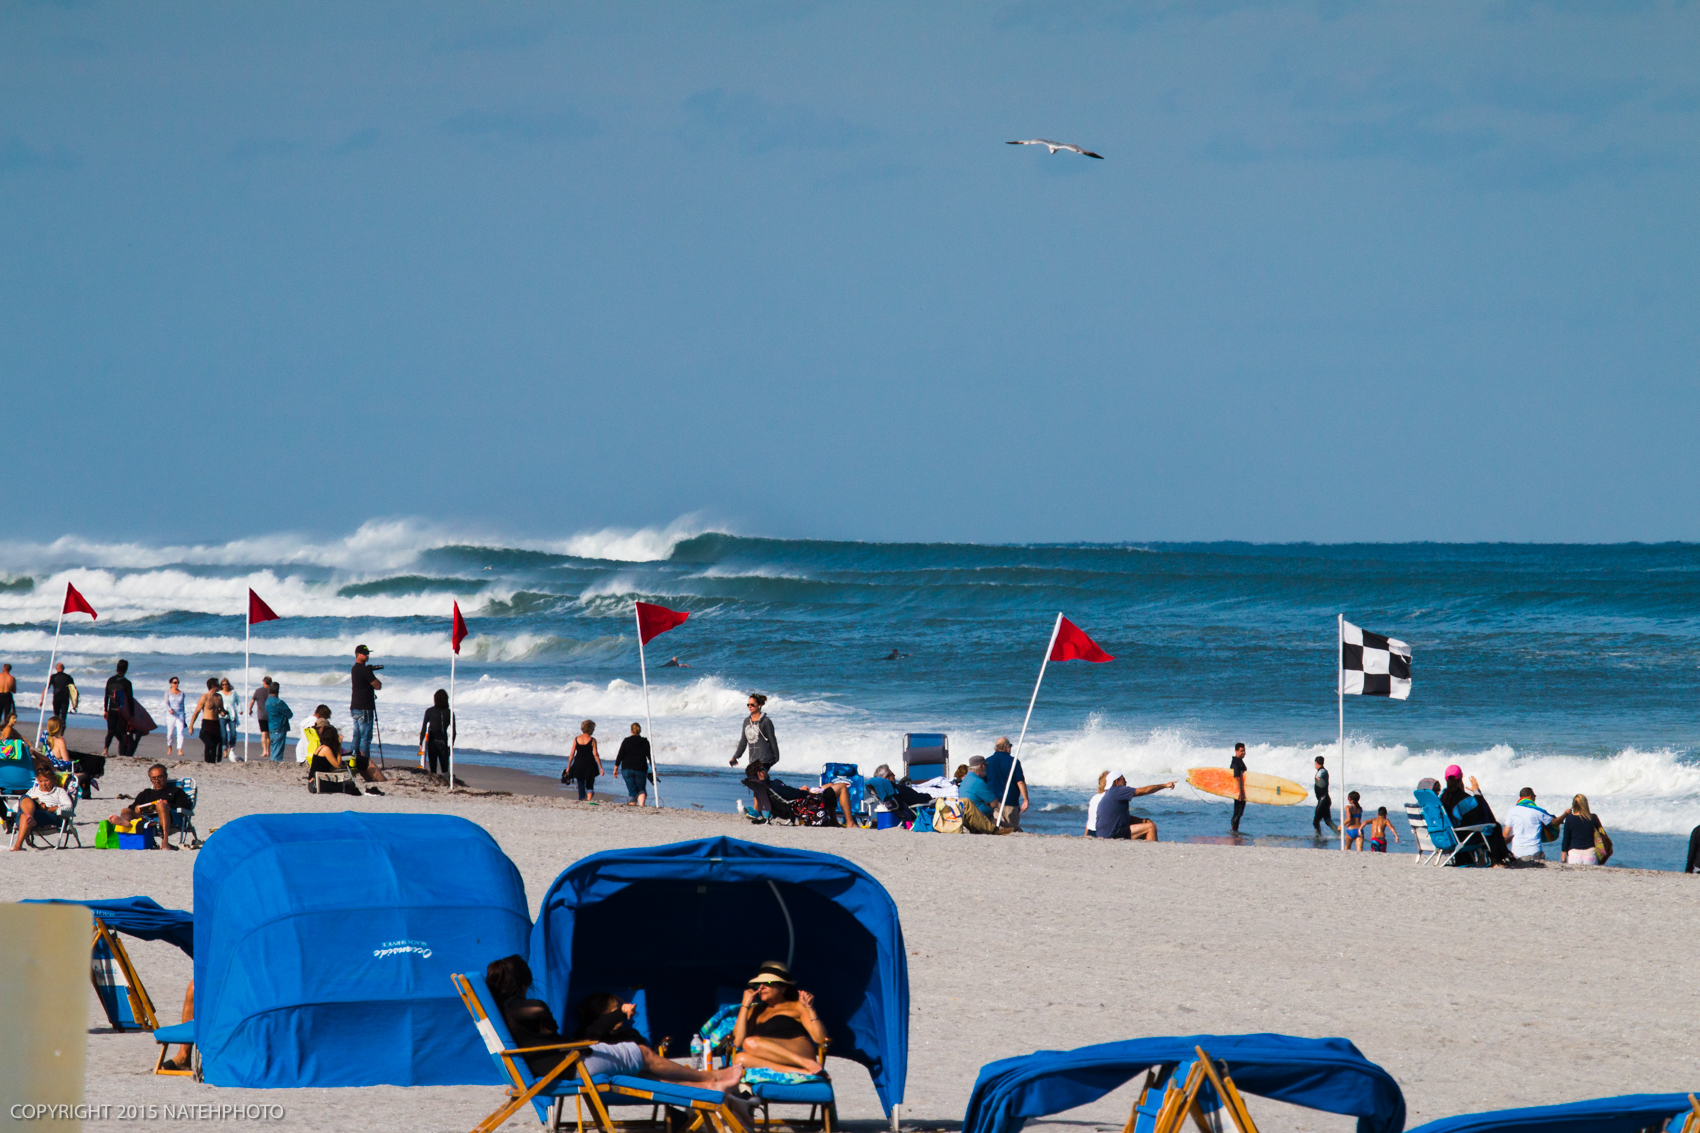 Watching these sets roll in from miles away was pretty cool, at least I thought so. However these people strategically placed there shade canopy as an anti-surf canopy.